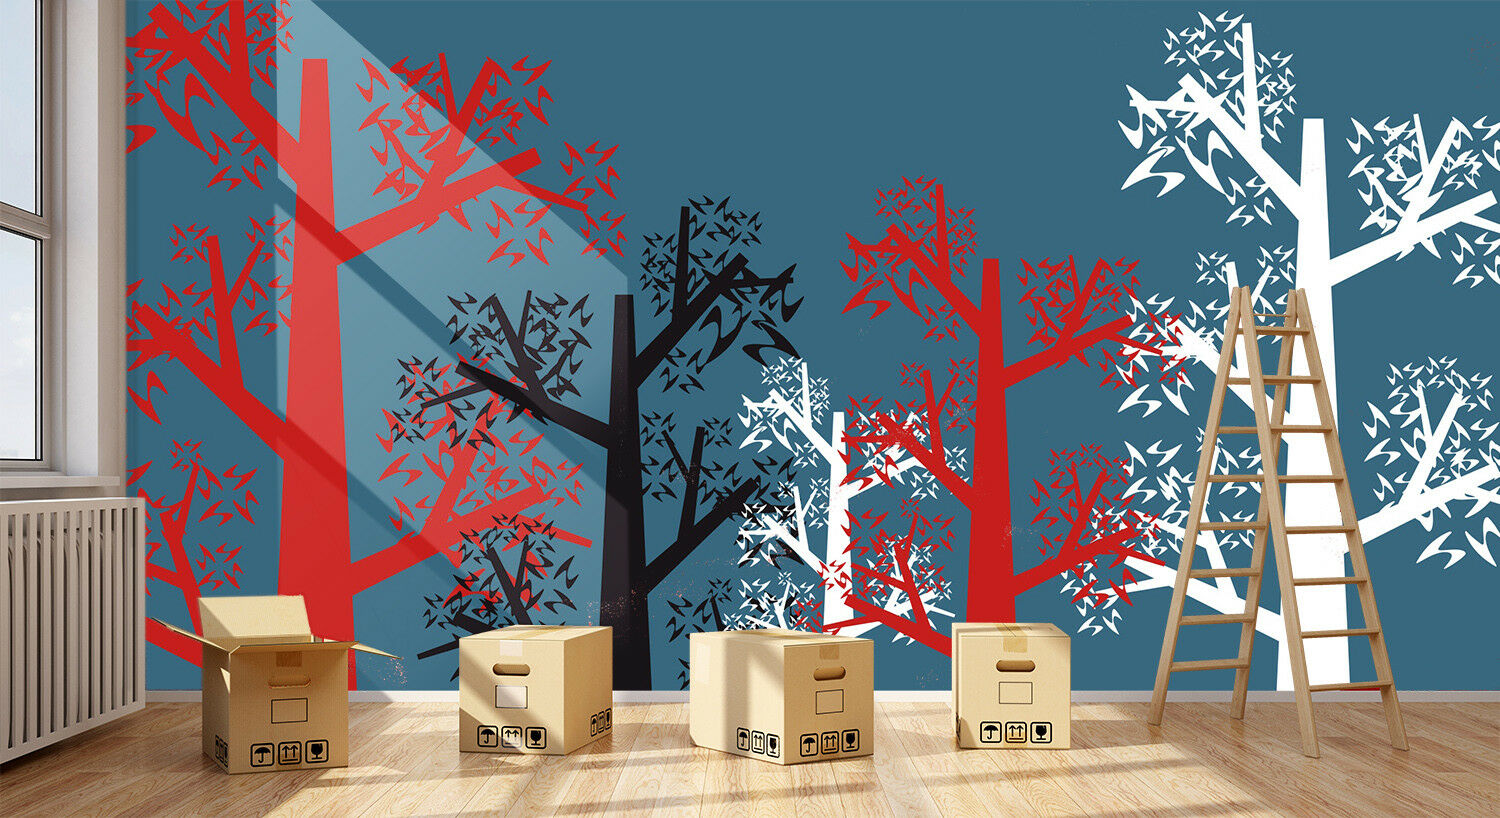 3D Color Branches Branches Branches 5 Wallpaper Murals Wall Print Wallpaper Mural AJ WALL AU Lemon c6e2ac